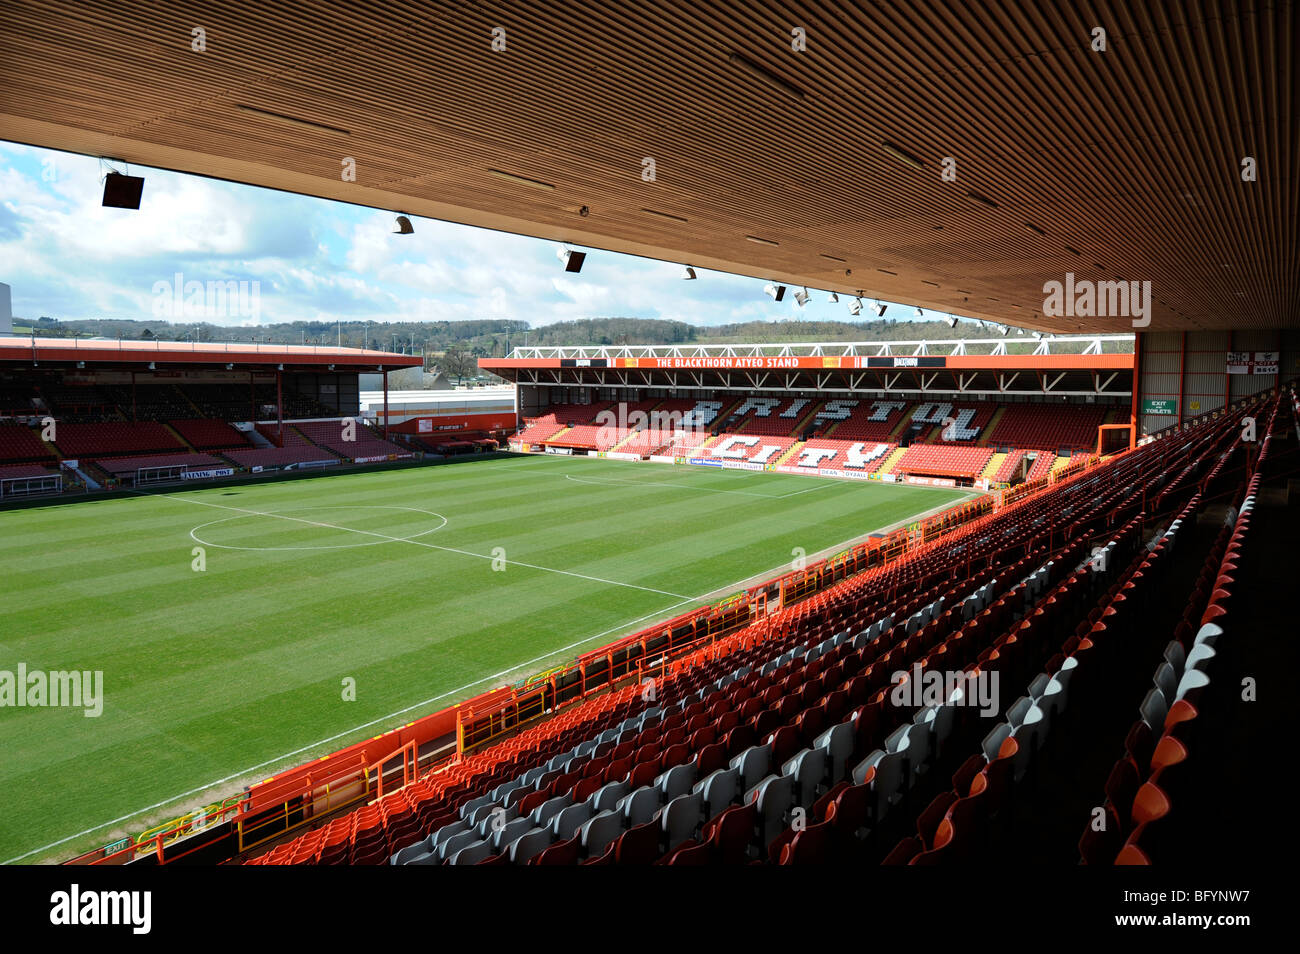 The Bristol City FC ground Ashton Gate March 2008 - Stock Image